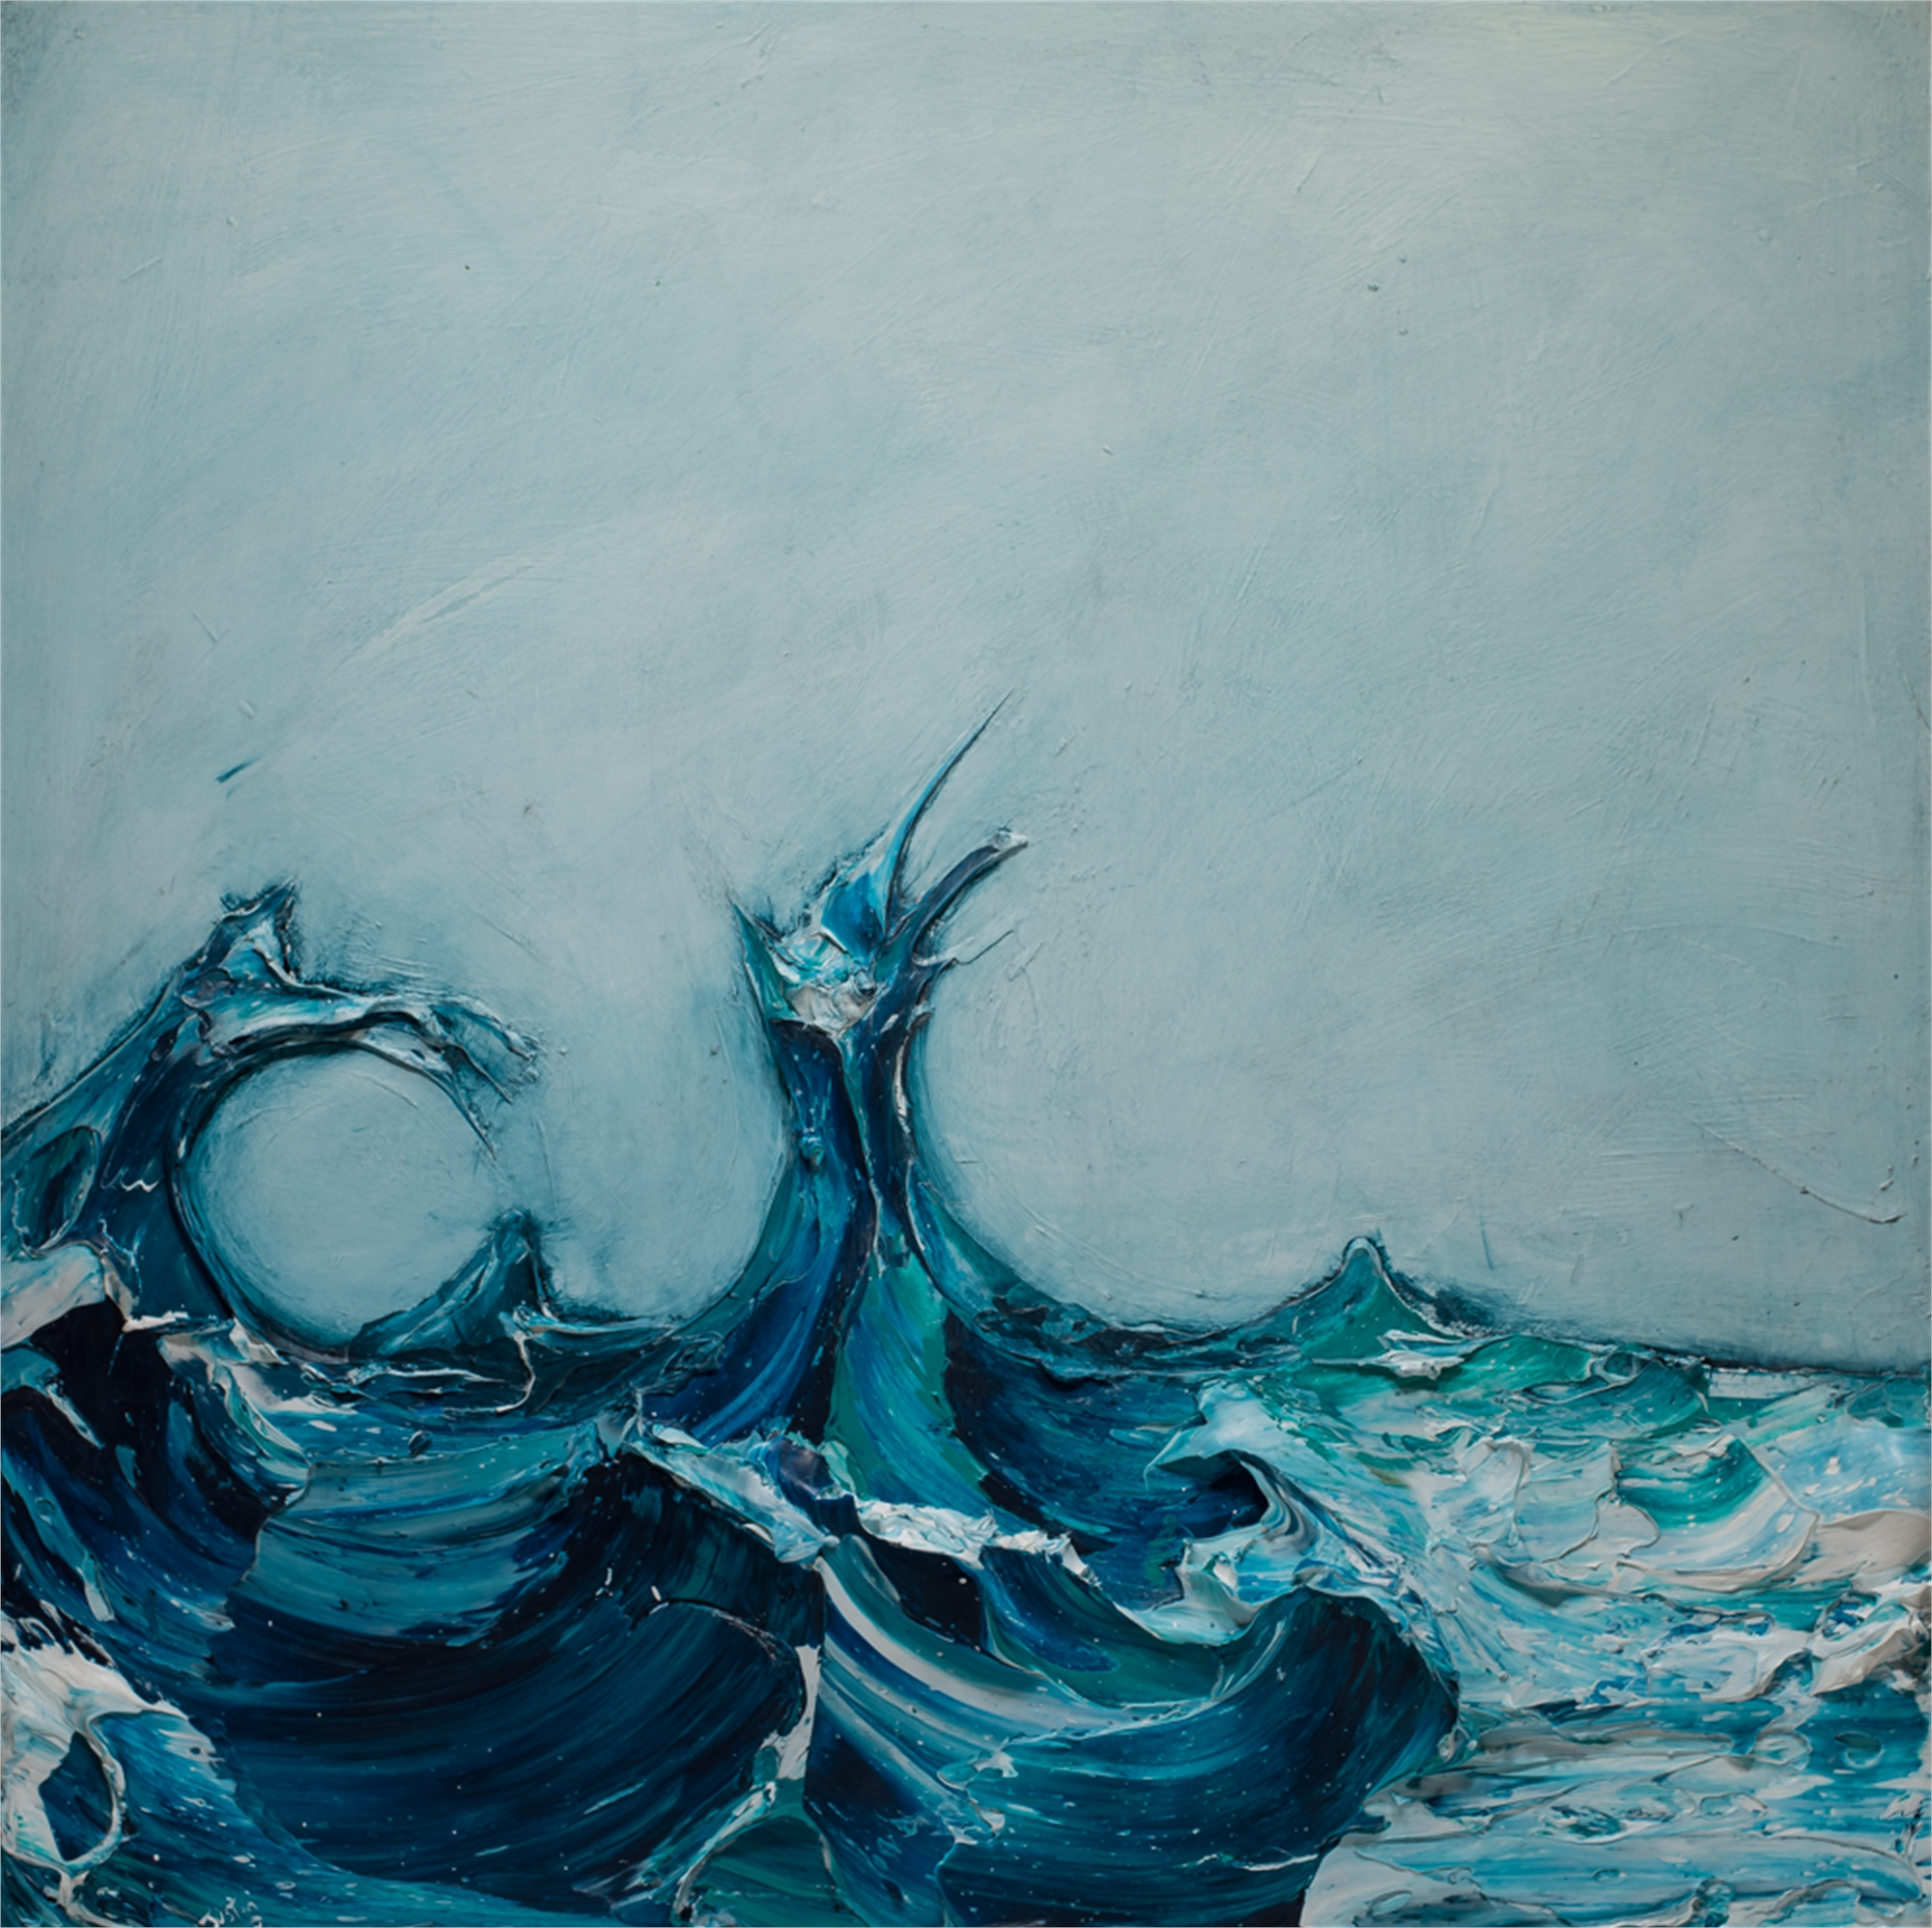 WAVE WV48X48-2018-278 by Justin Gaffrey